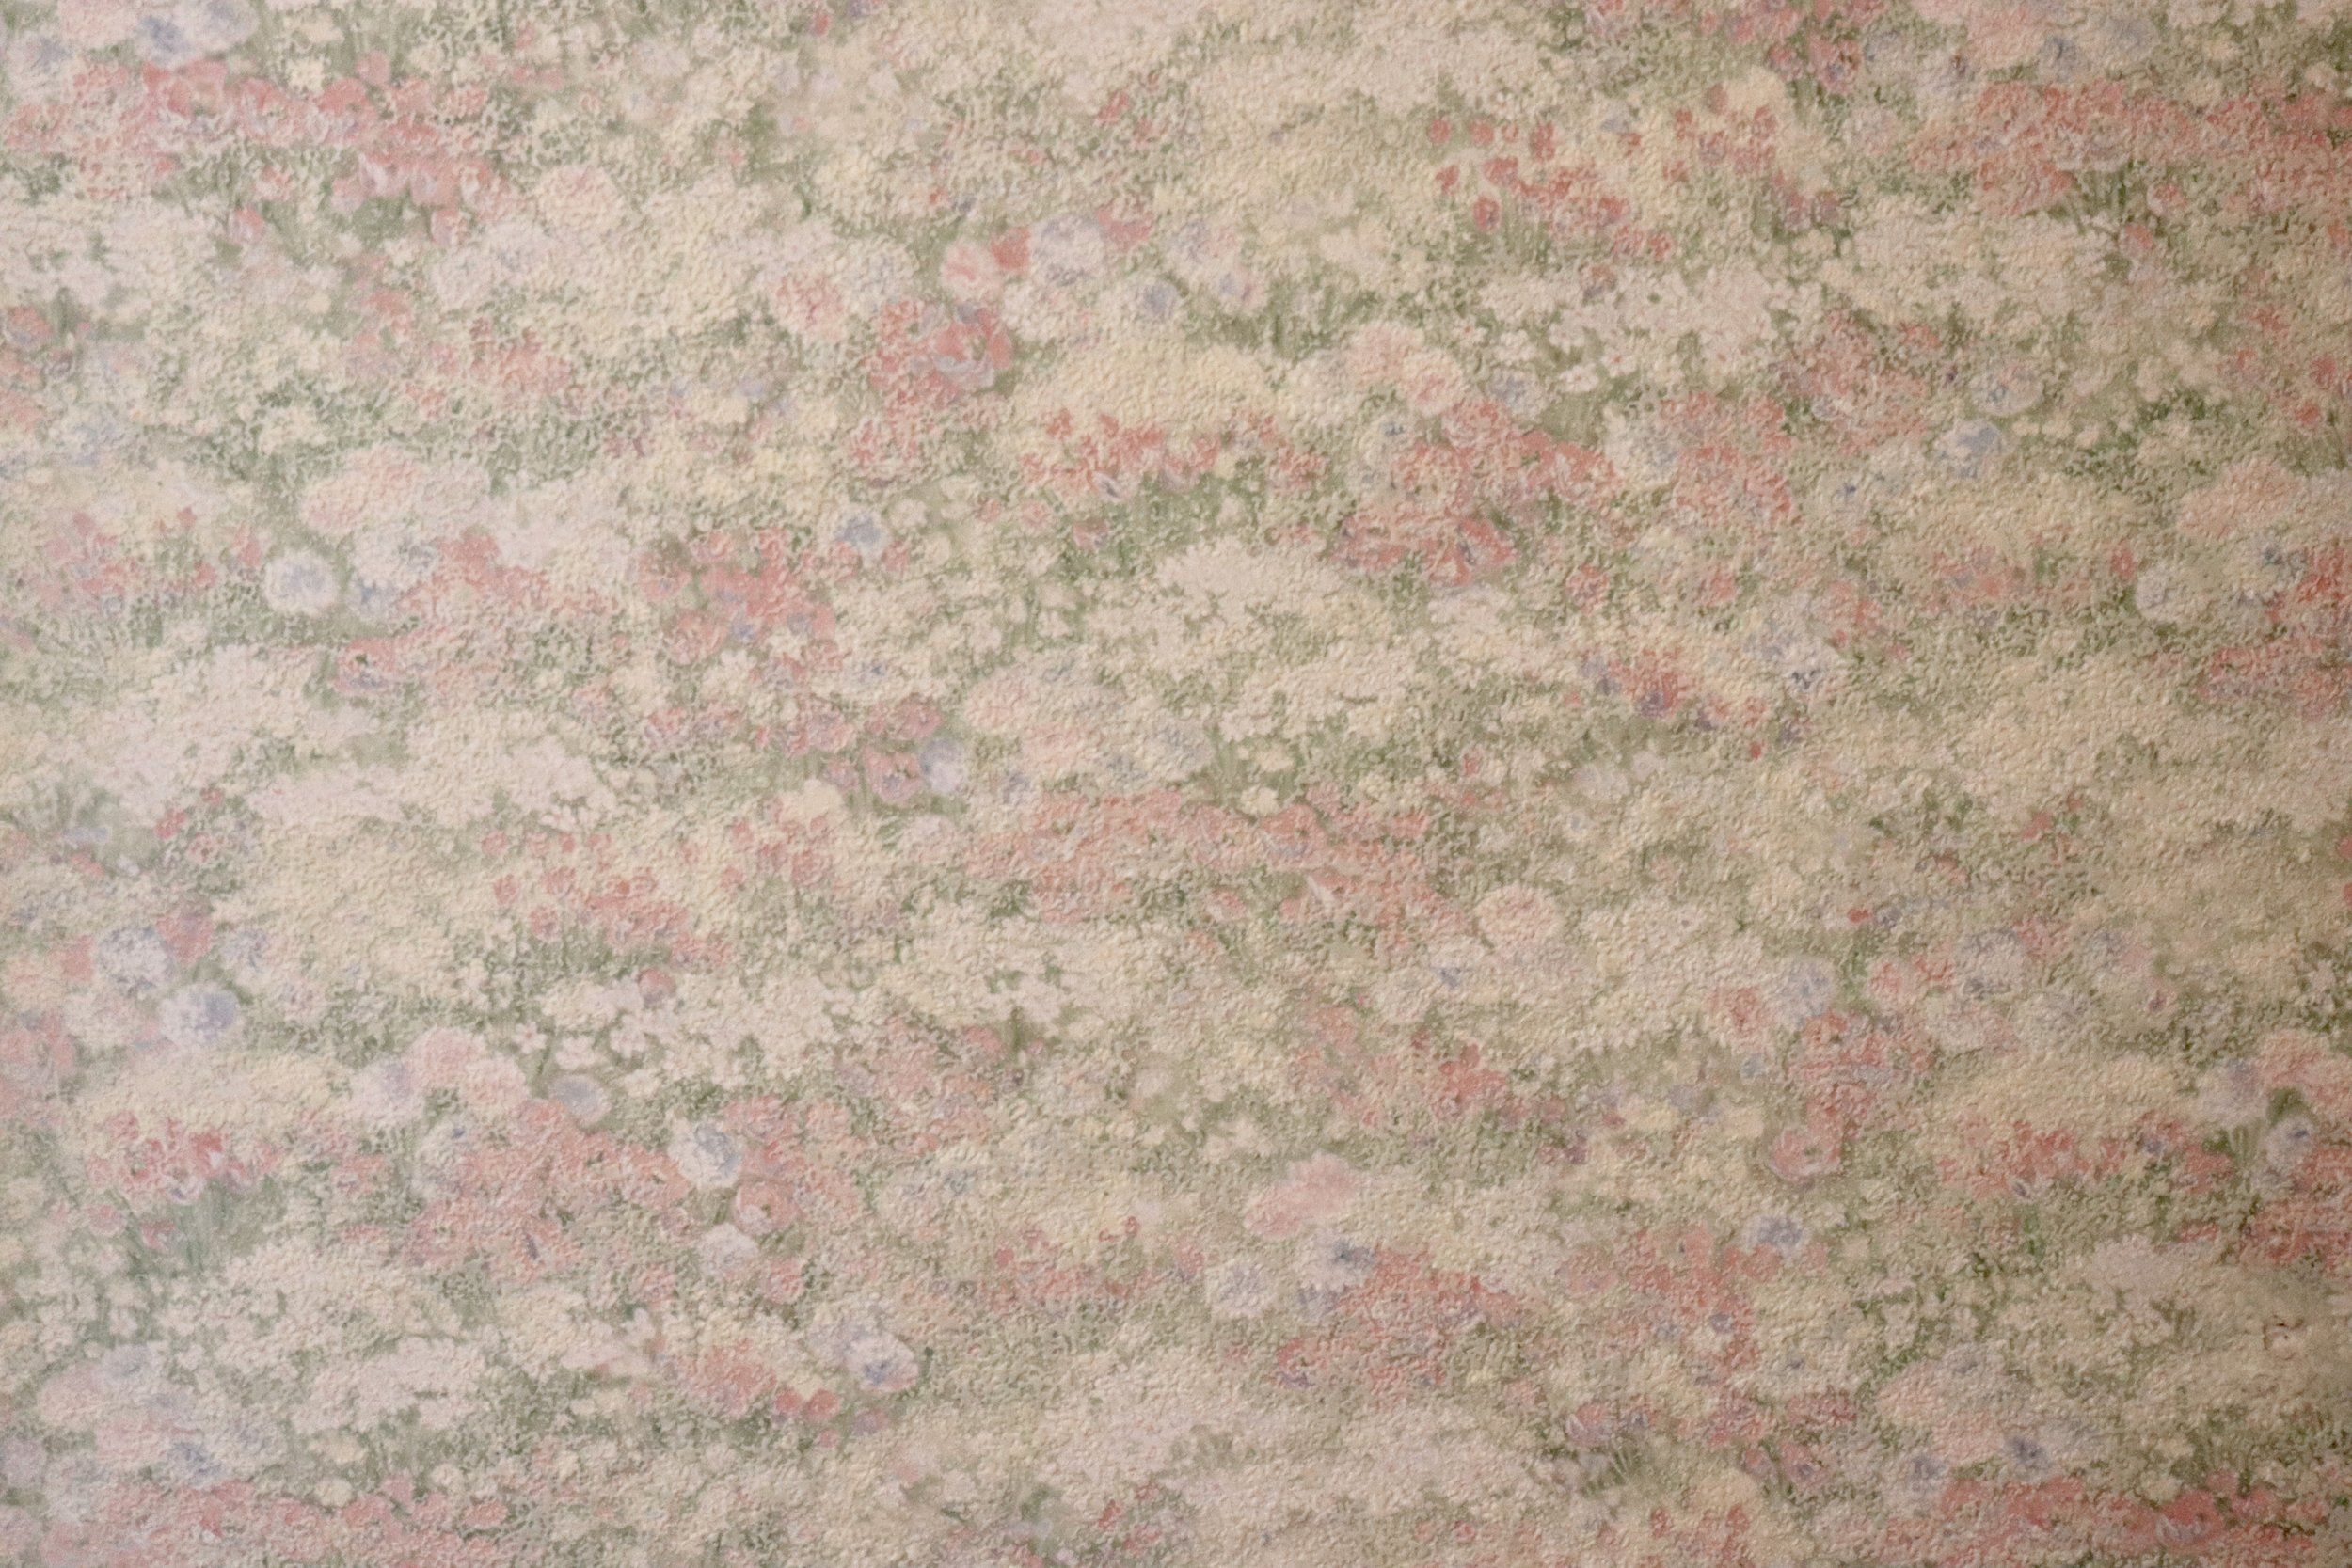 The hallway - a textured pinky floral